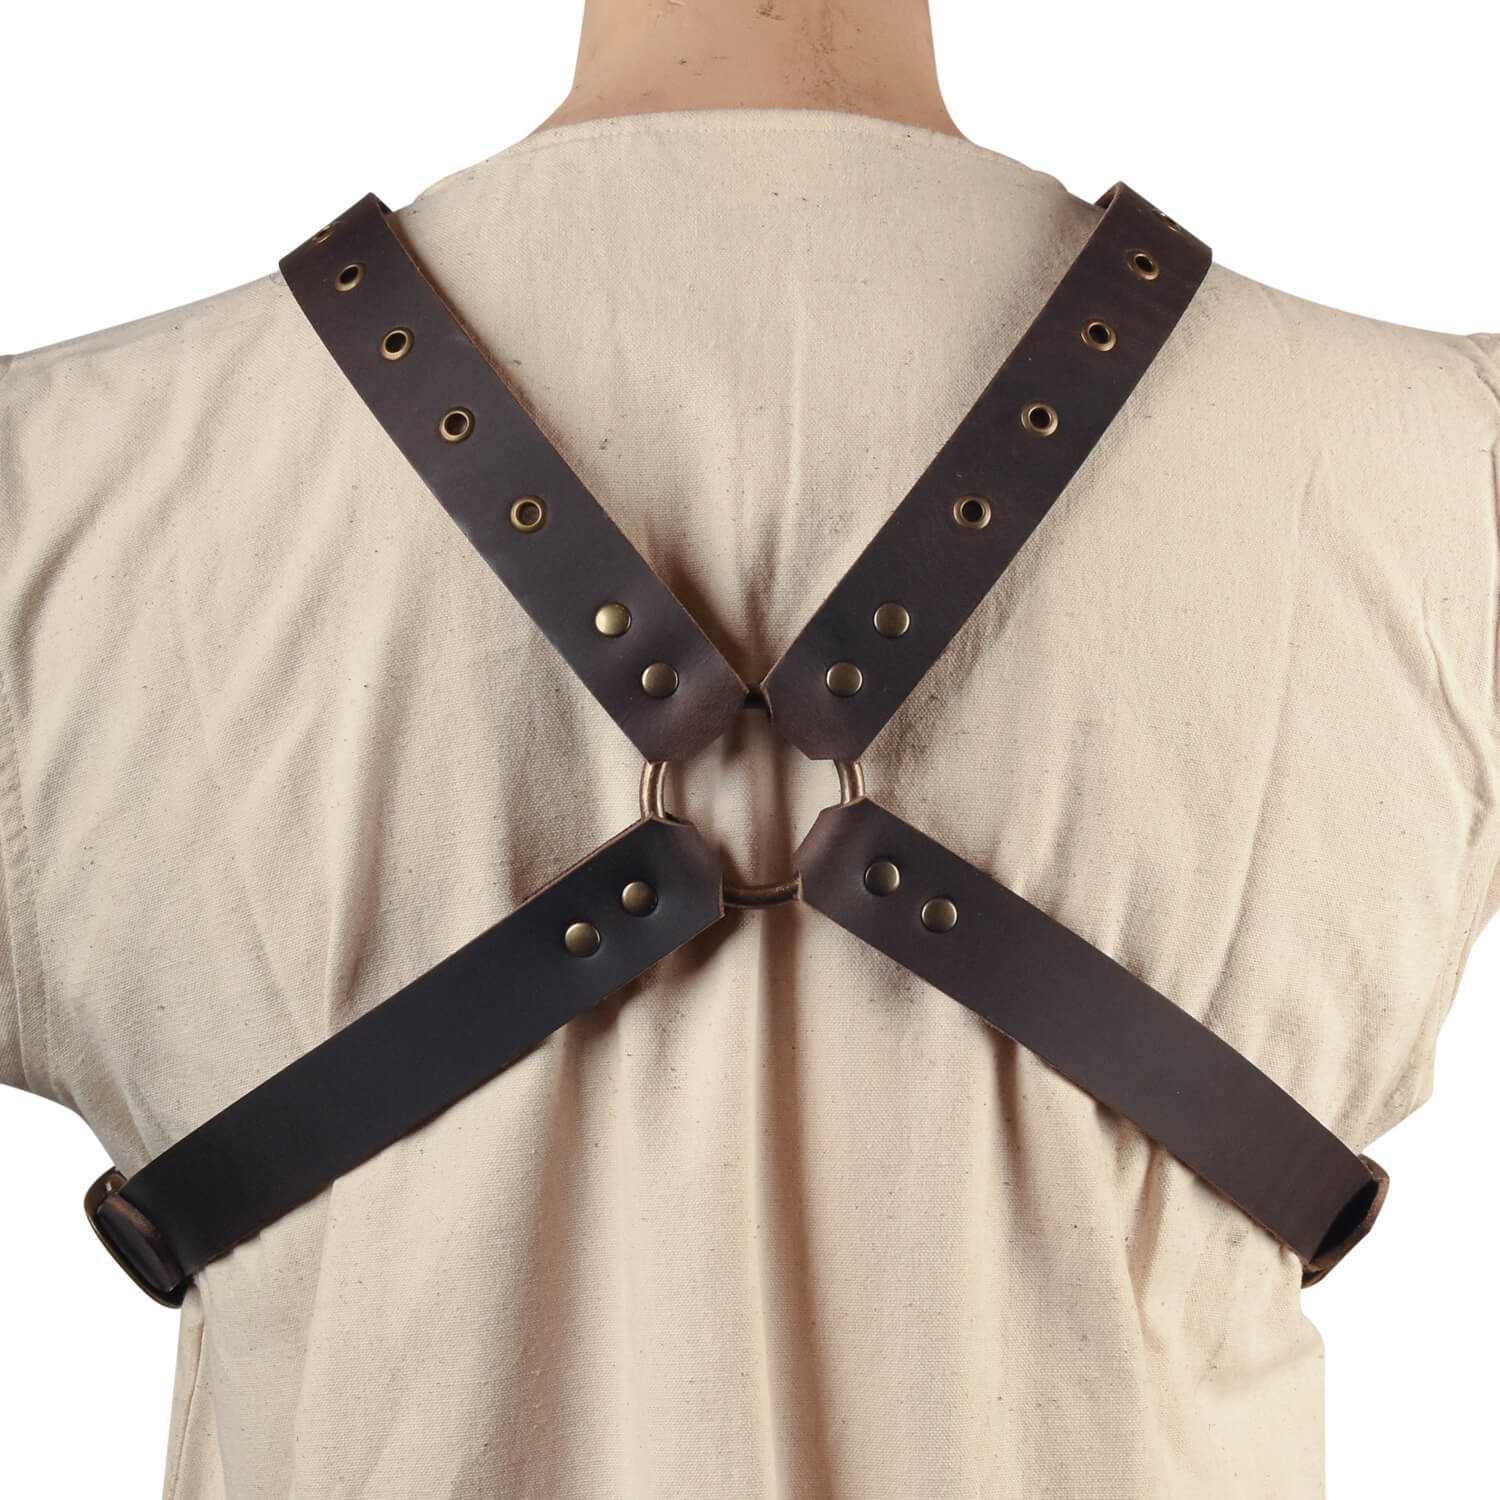 Harness in X